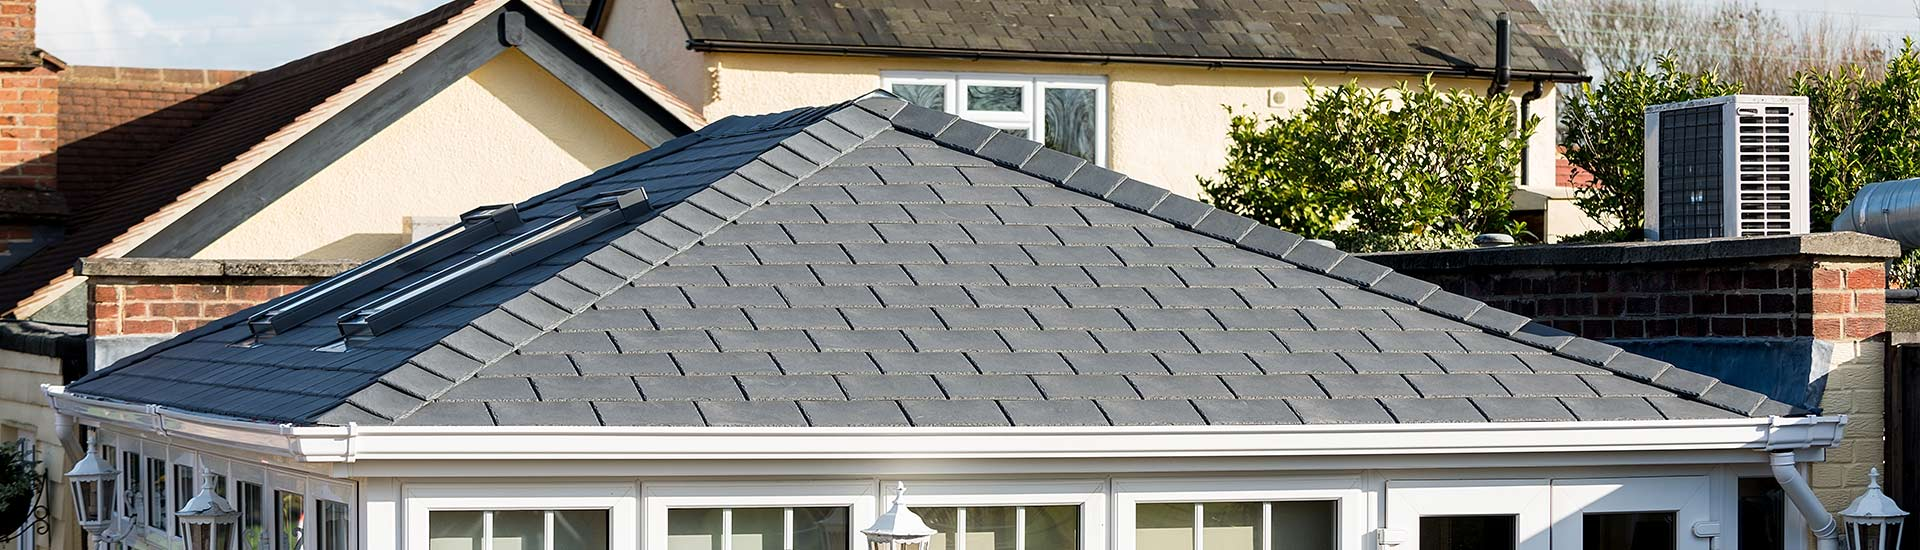 residential roofing house